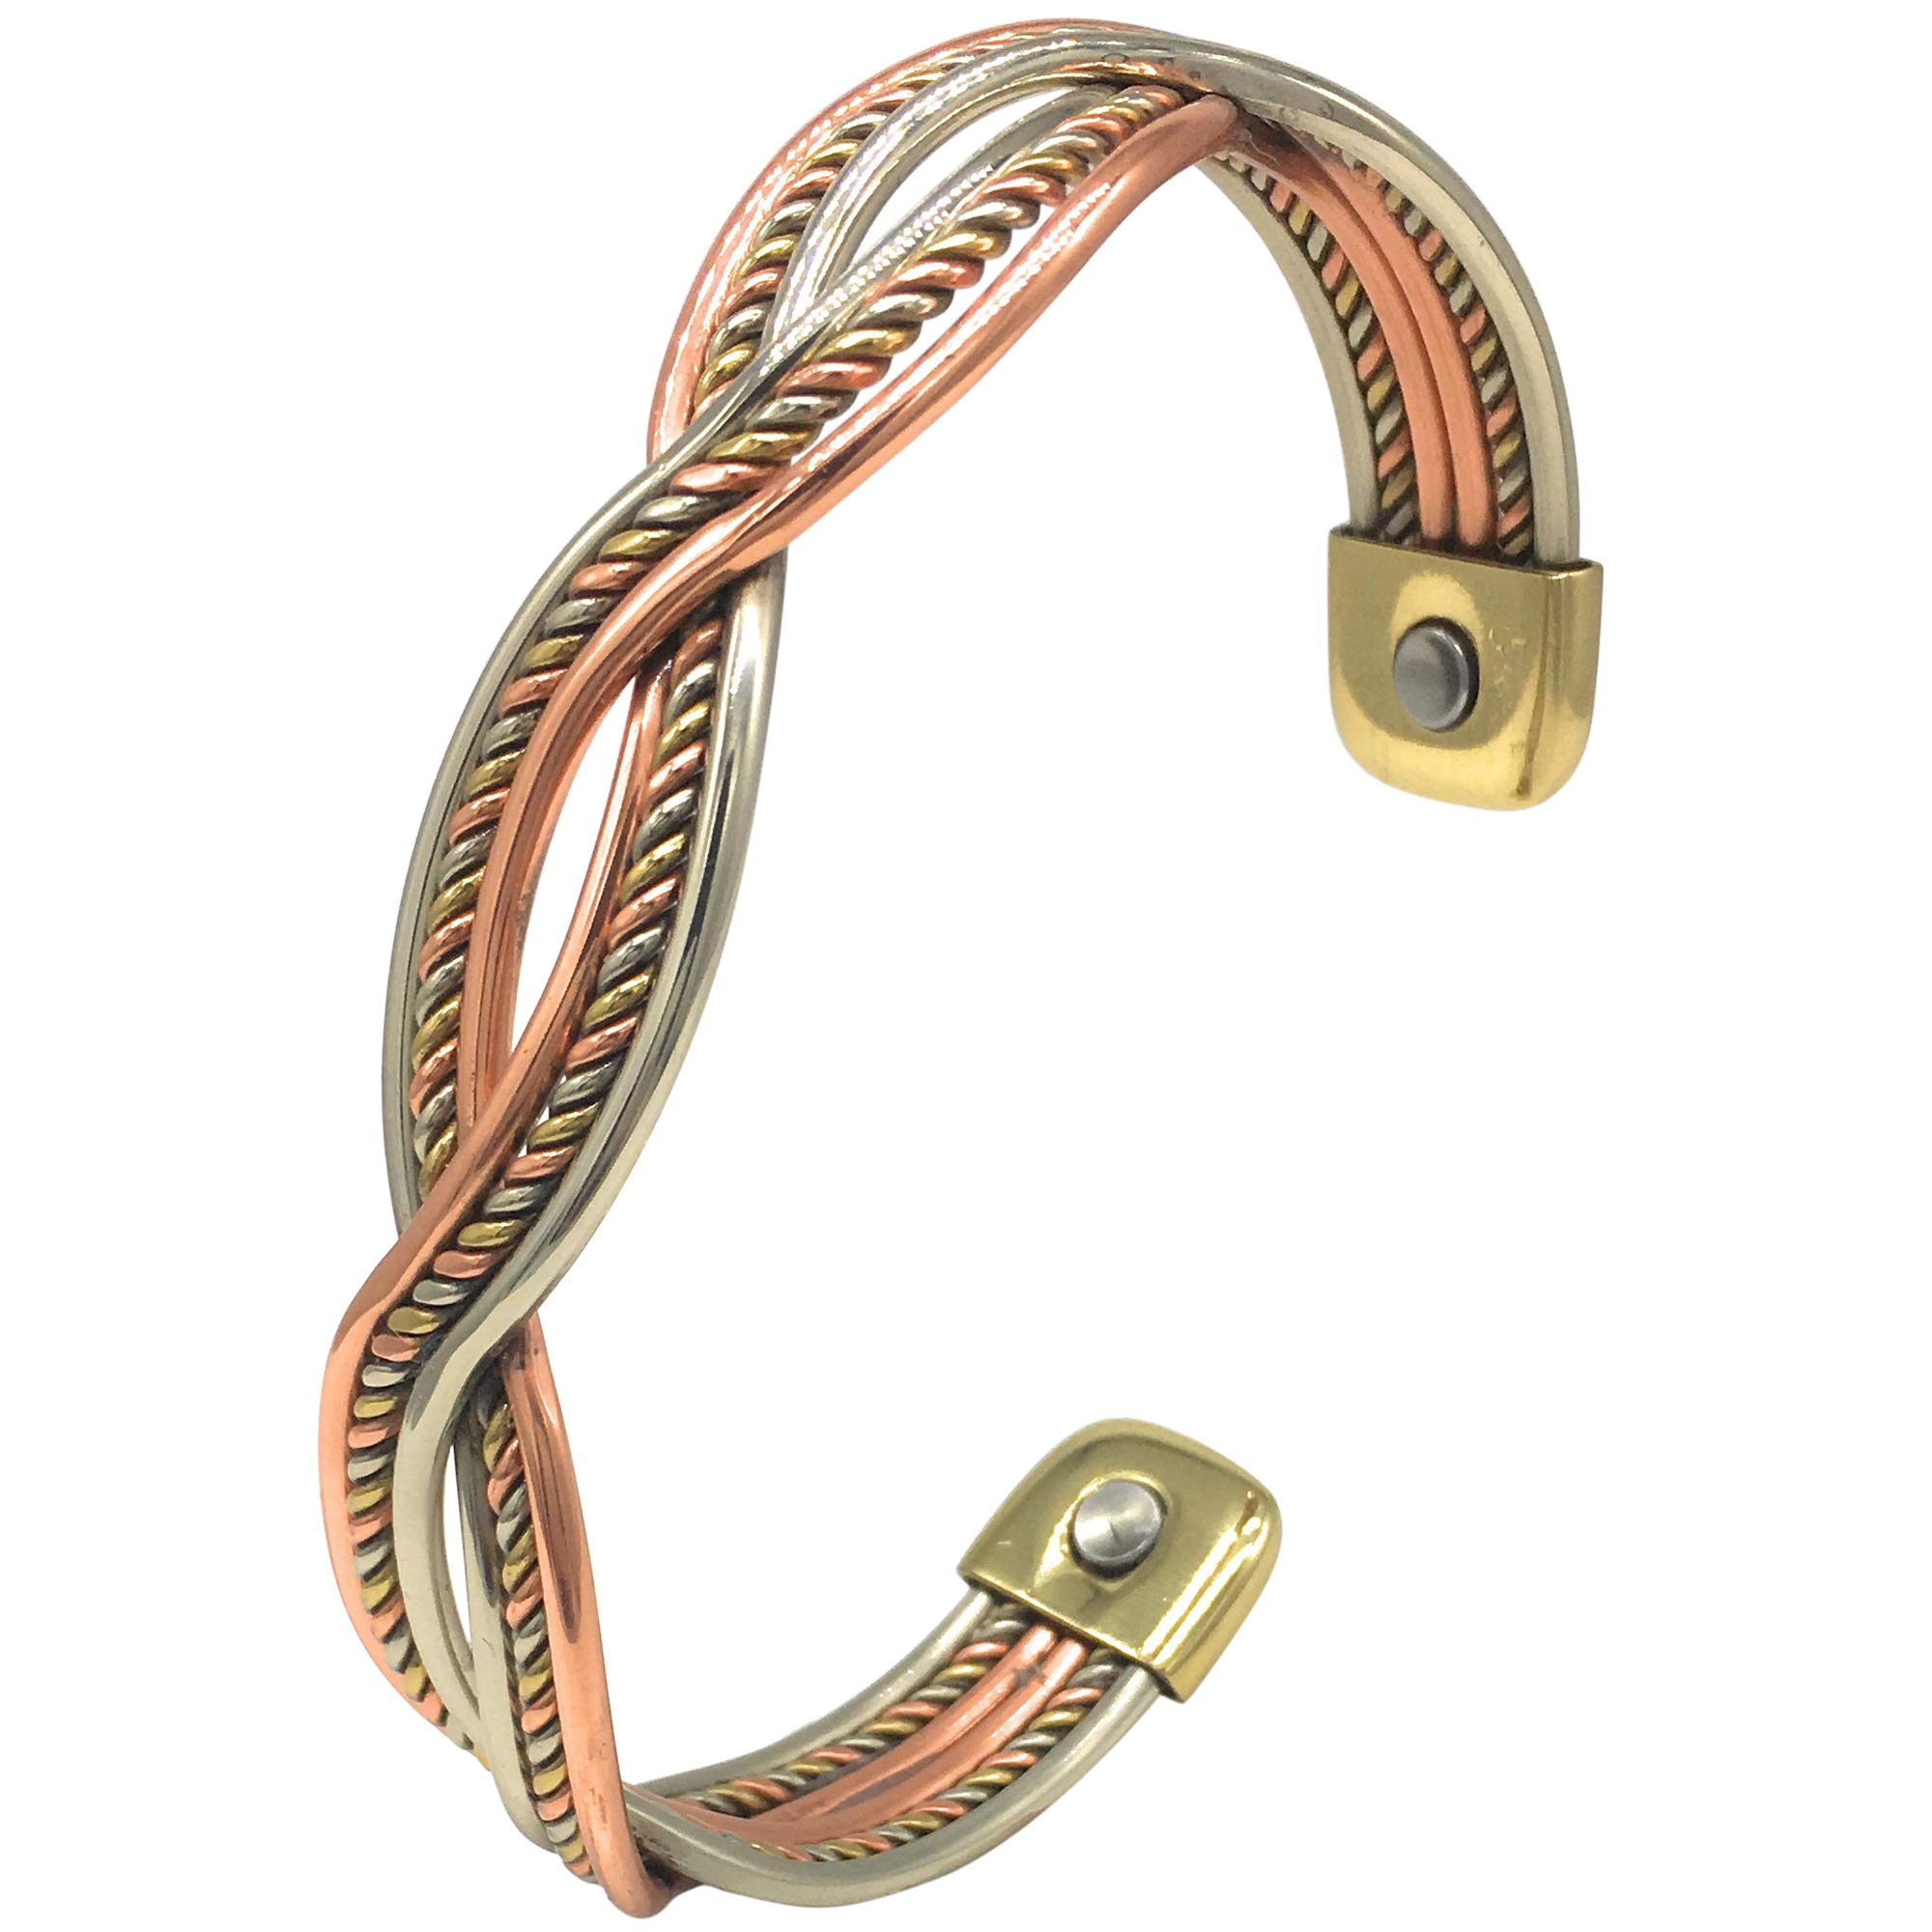 Helena Rose Pure Copper Bangle – Magnetic Therapy Health Bracelet for Women – Handmade Mexican Twist Design – Aids Natural Pain Relief for Arthritis Joint Stiffness – Plus Jewellery Gift Box